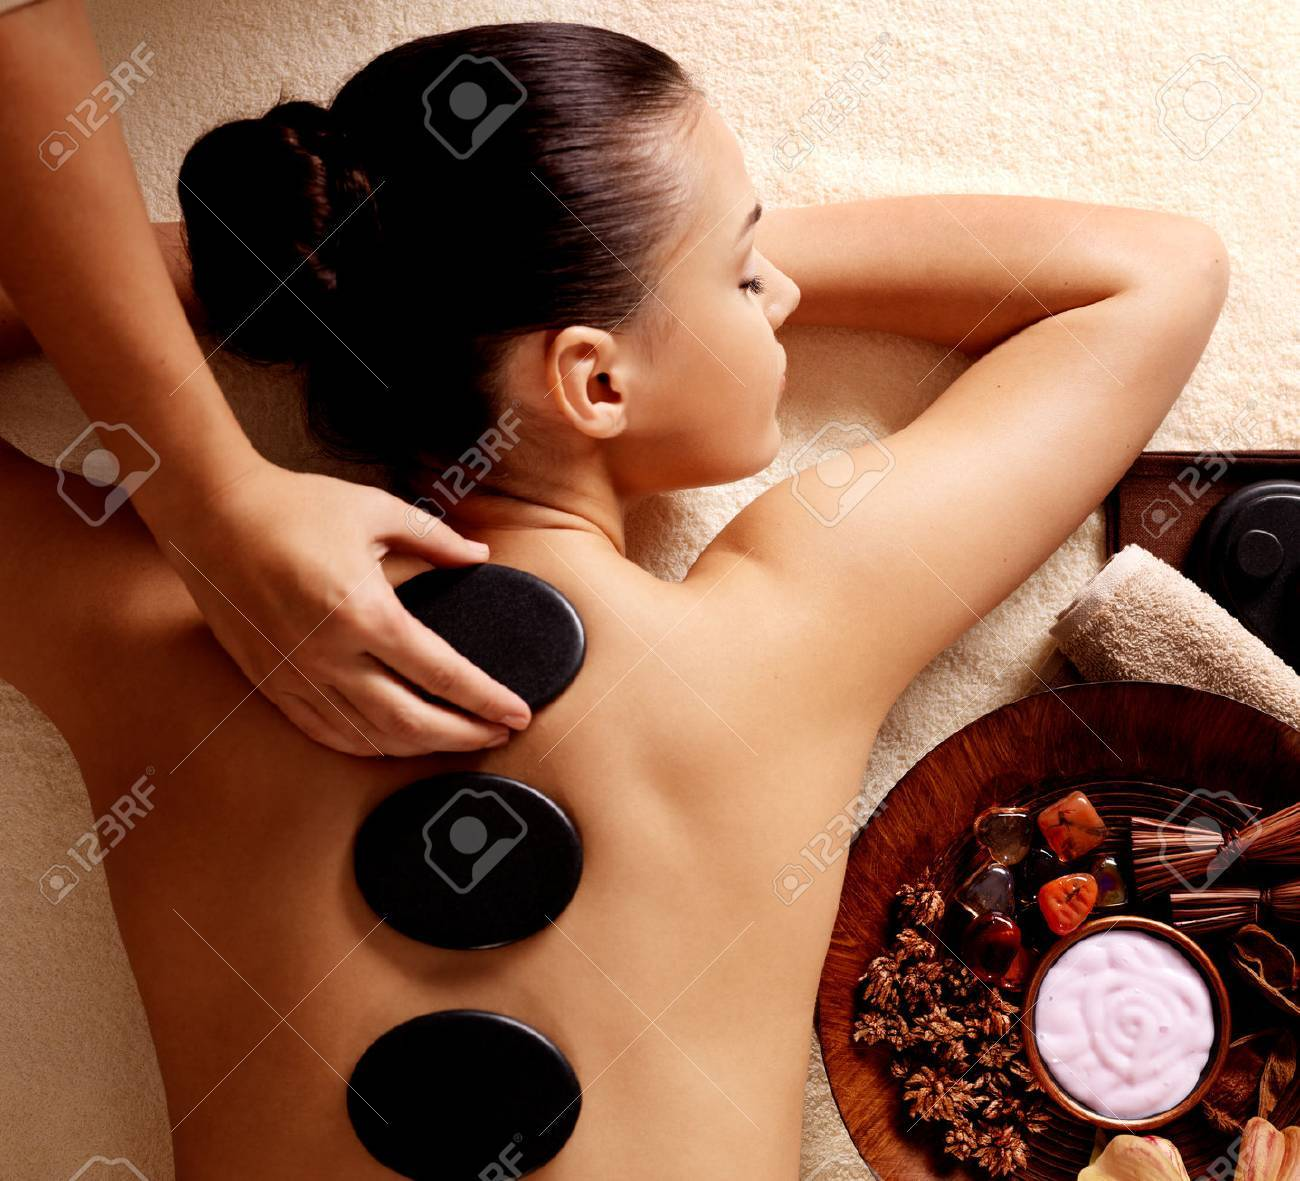 Young woman getting hot stone massage in spa salon. Beauty treatment concept. Banque d'images - 62833668